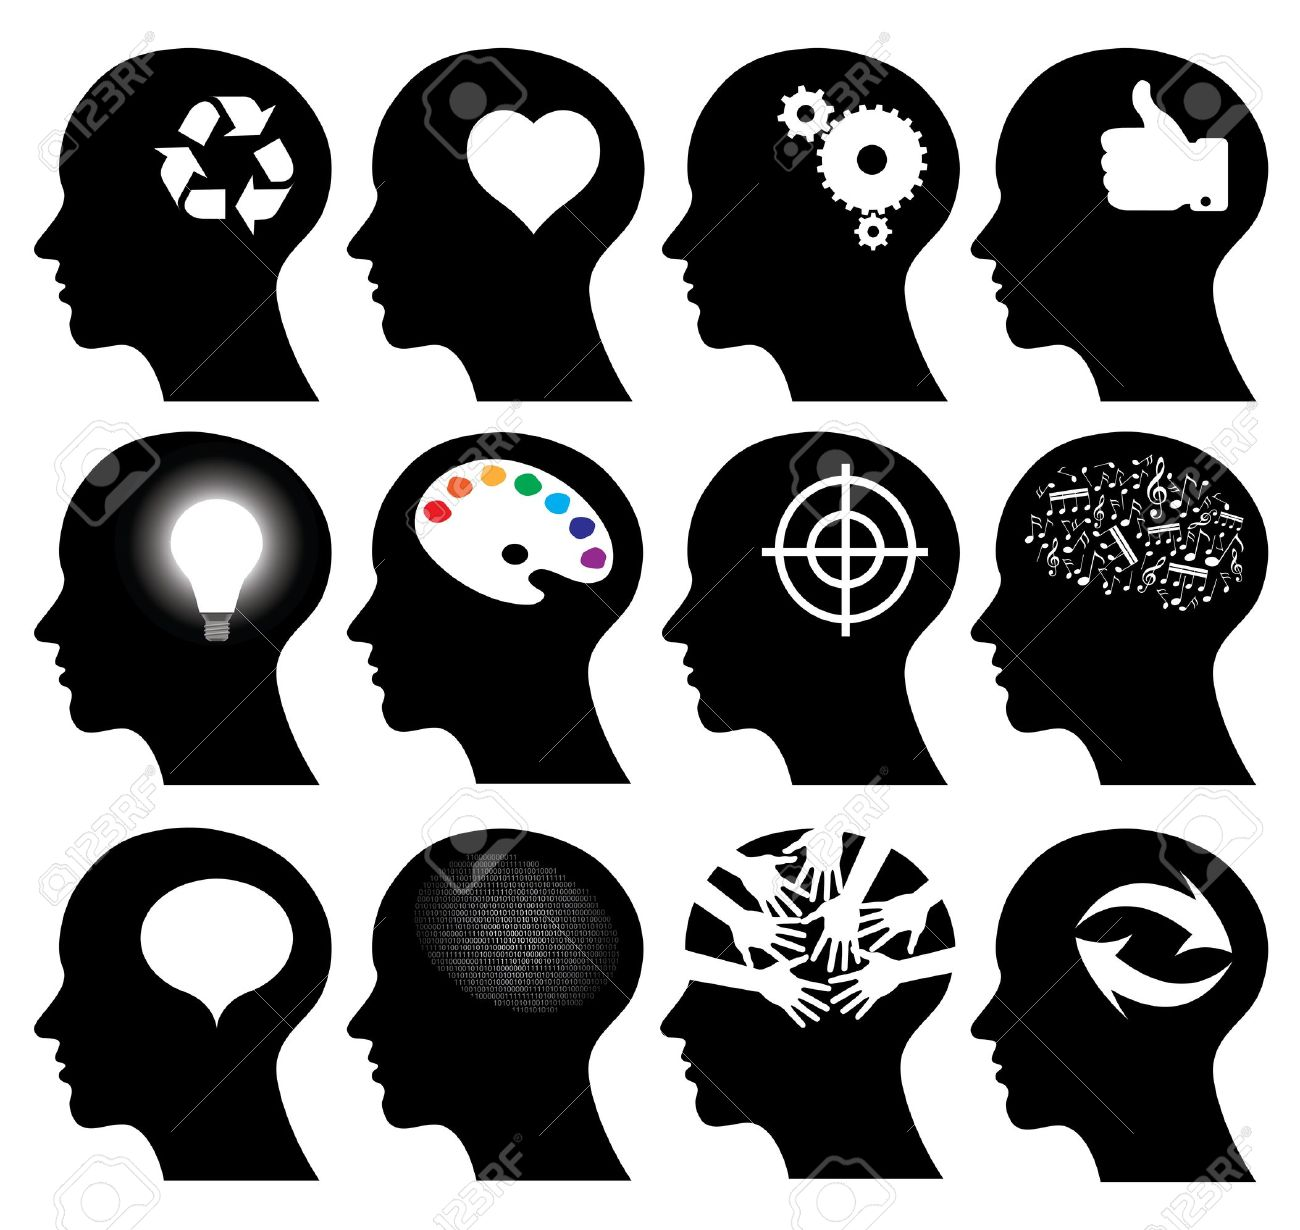 Set of 12 head icons with idea symbols, vector illustrations Stock Vector - 14643530